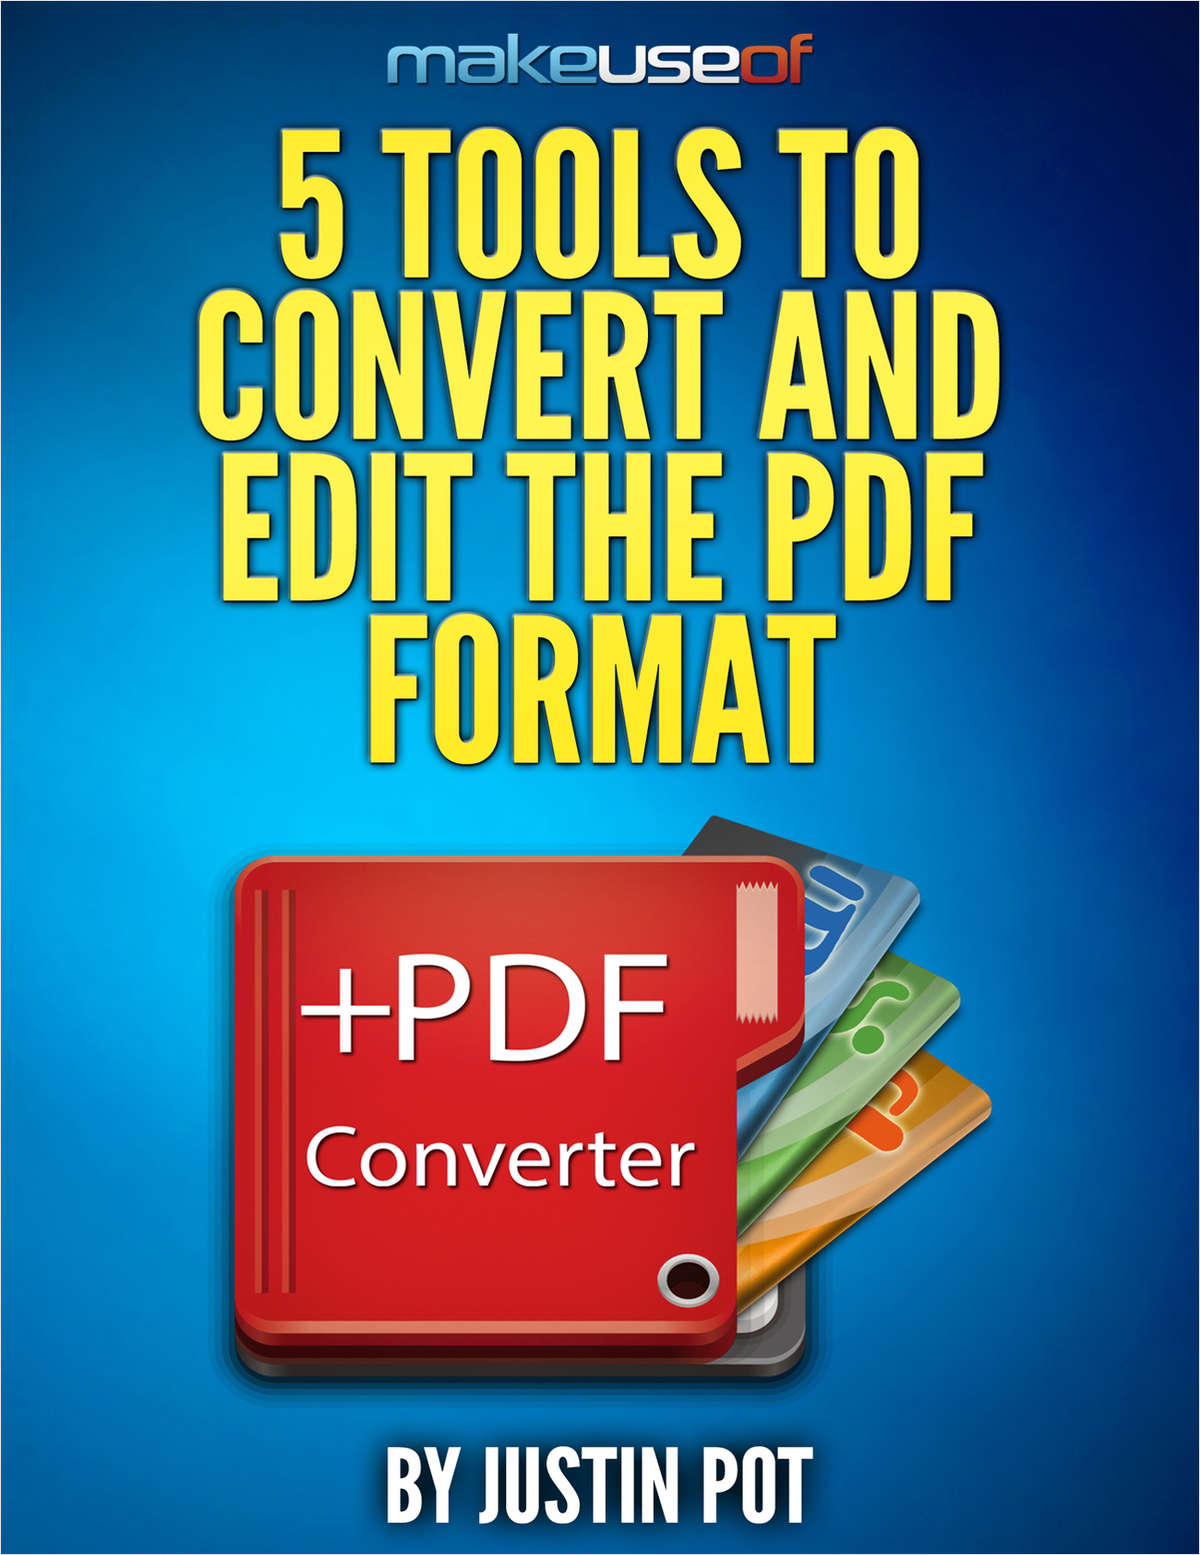 5 Tools to Convert and Edit the PDF Format